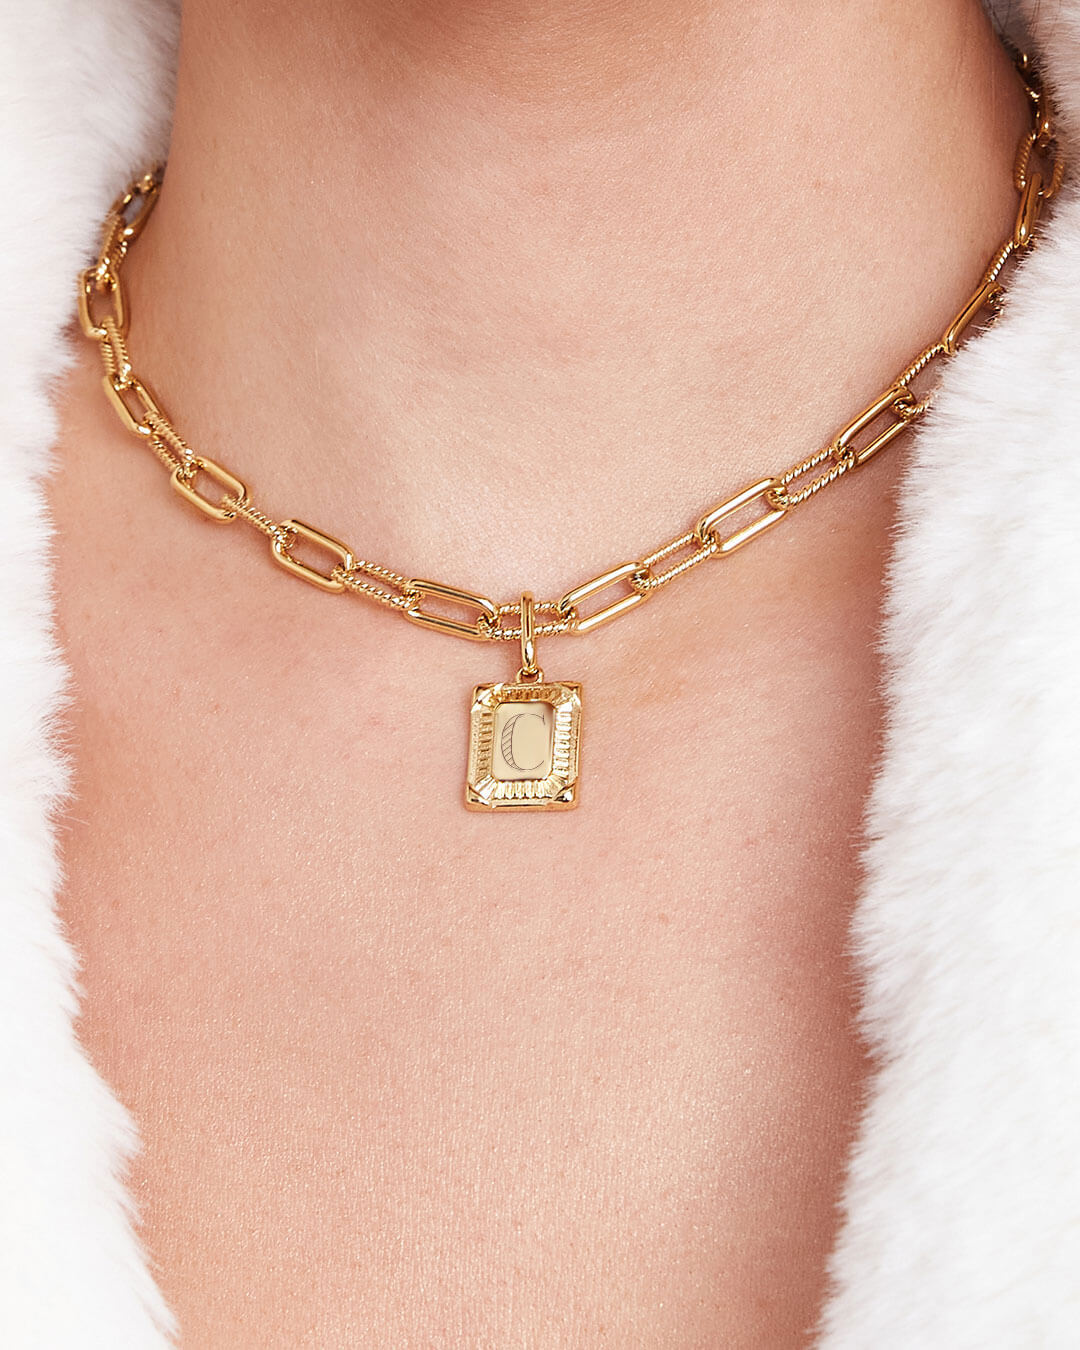 Personalise Square Link Chain Necklace (Gold)